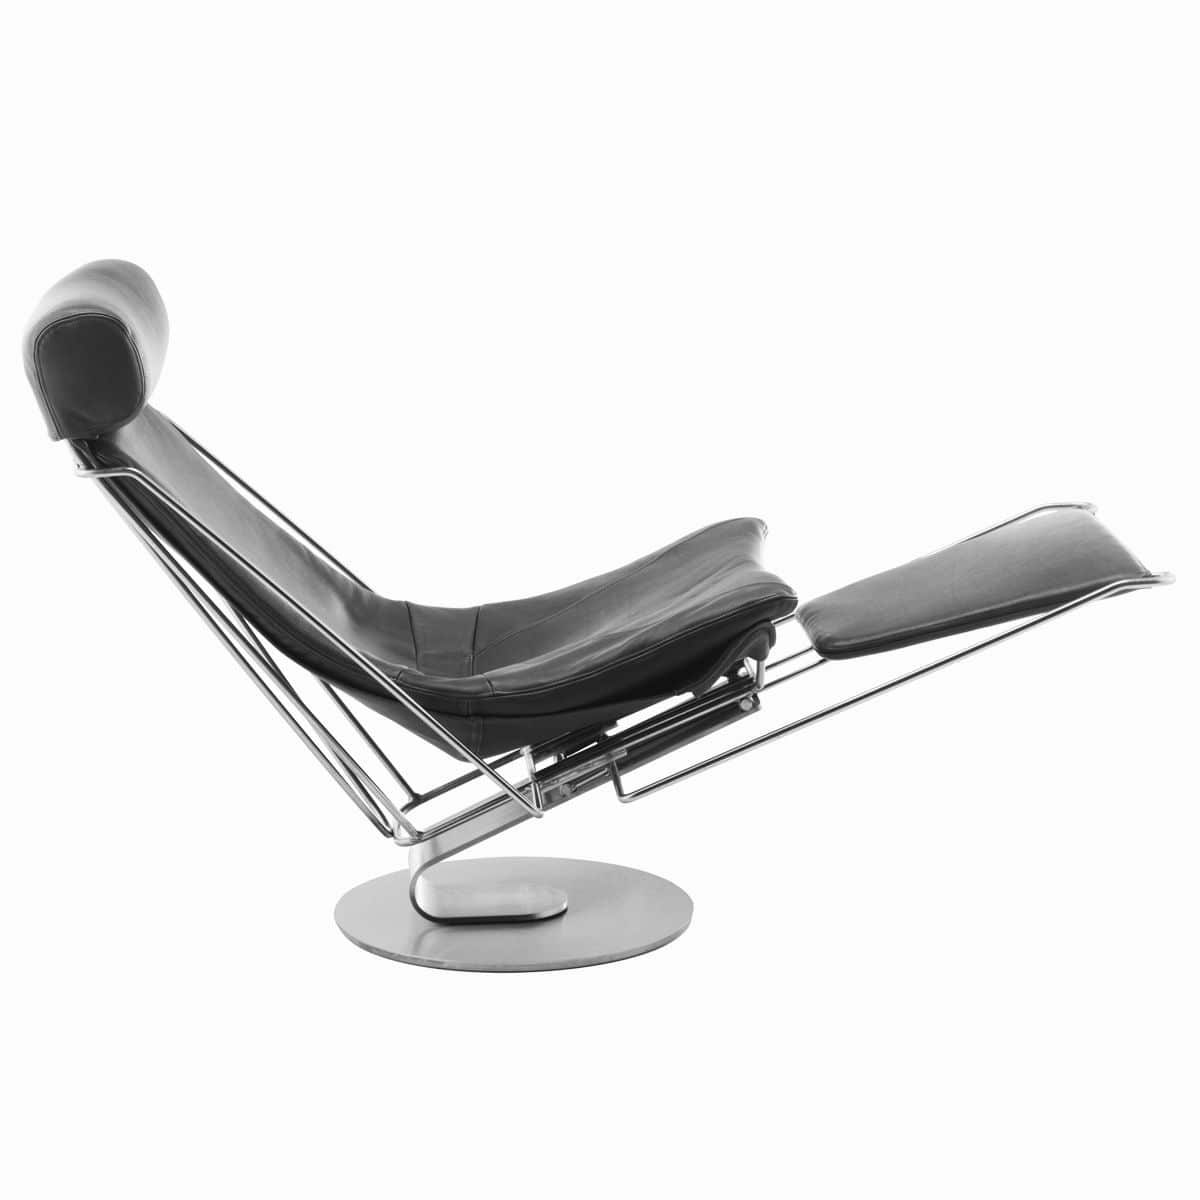 Contemporary Chaise Longue / Leather / Stainless Steel / Rocker   INTERDANE  By Oluf Lund